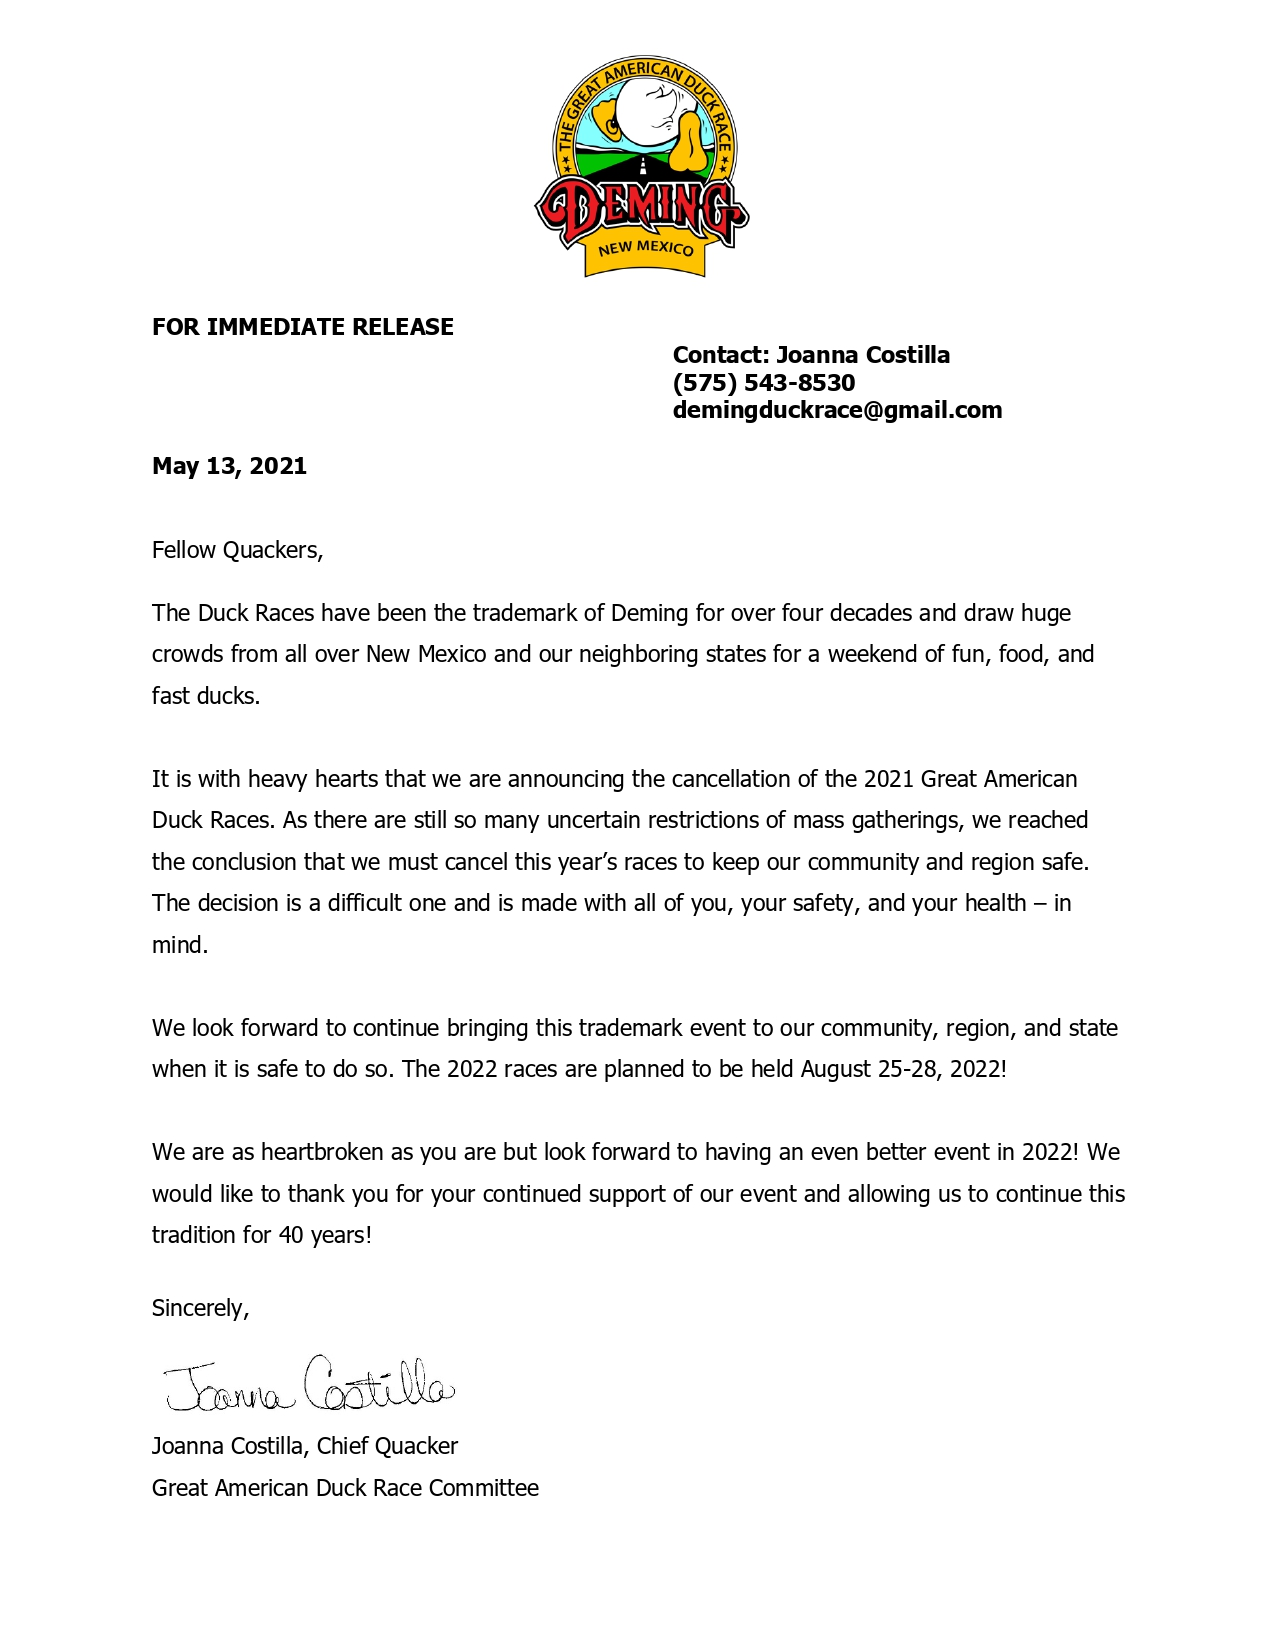 Event Cancellation Duck races_page-0001